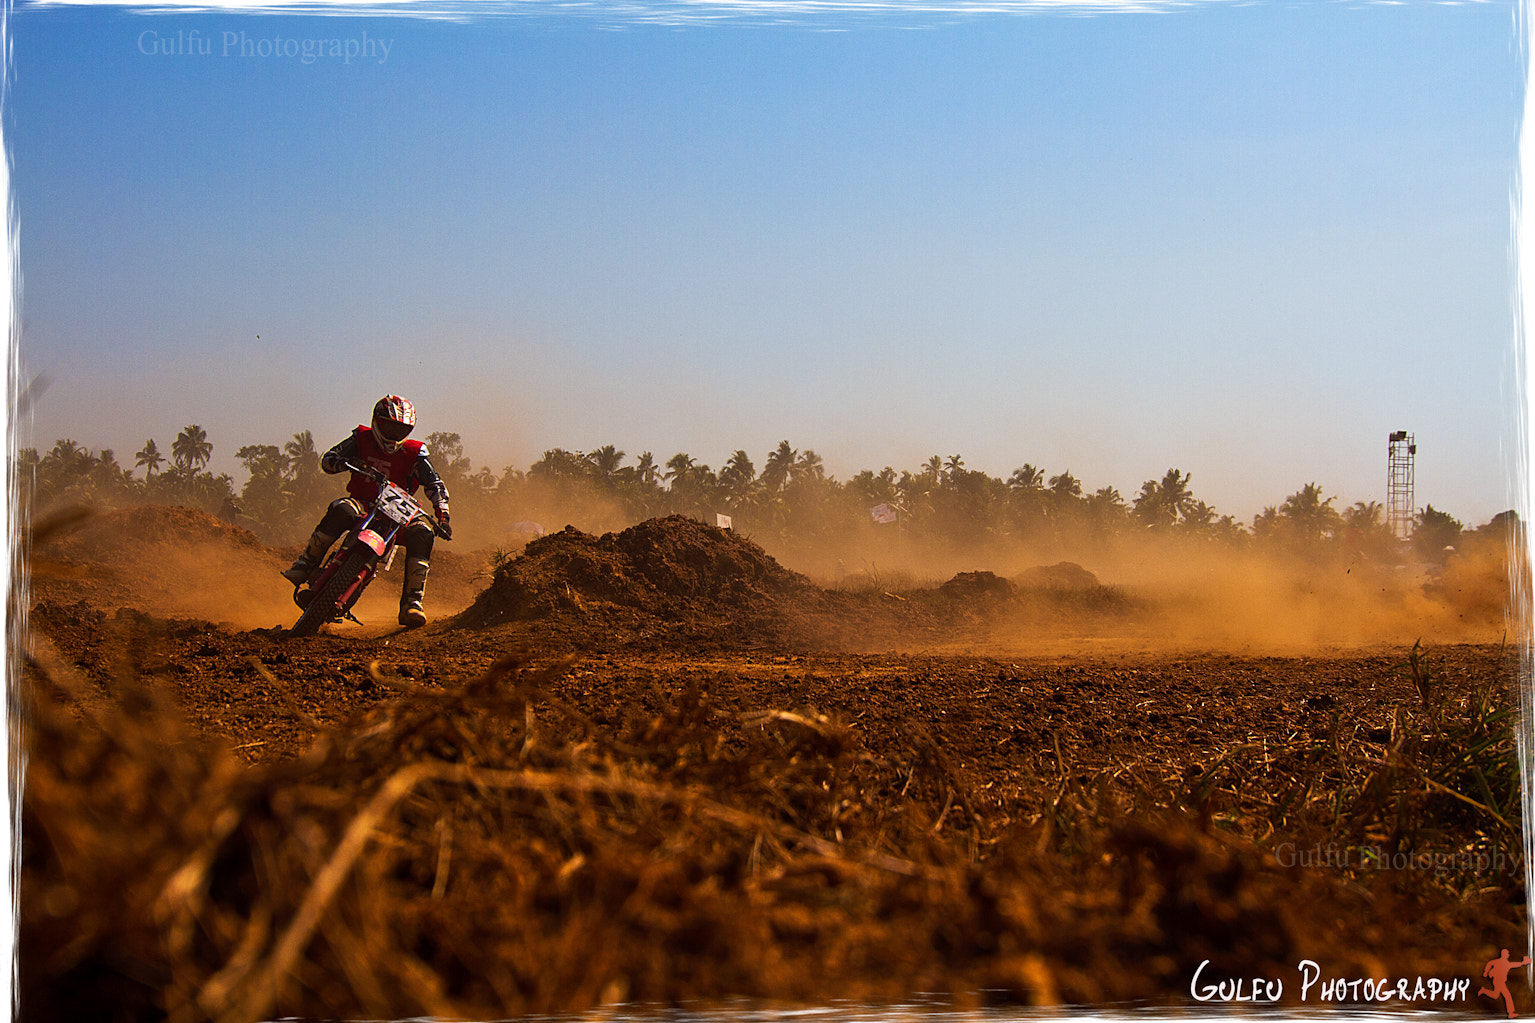 Photograph Bike Dirt Race ,Kochi,Kerala,2012 by Prasanth (Gulfu) on 500px